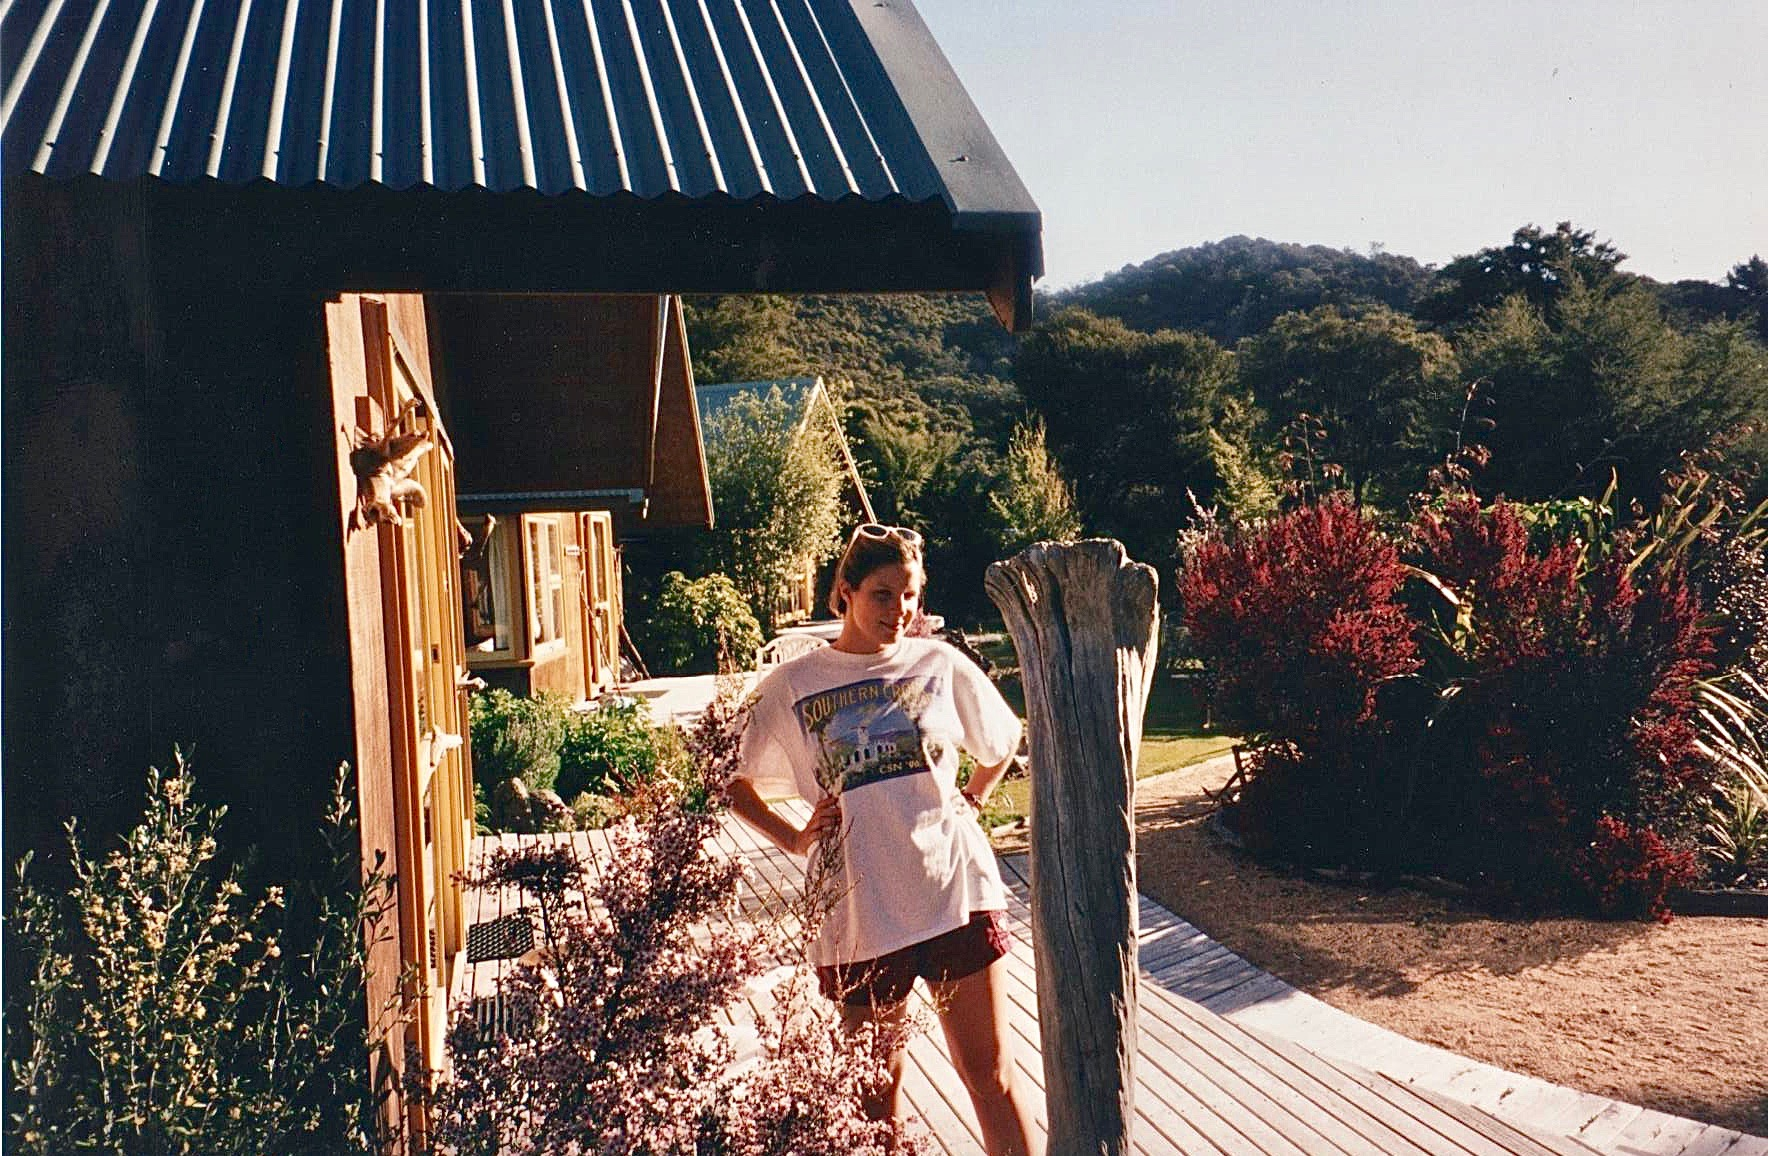 NZ ecolodge lula 2.jpg